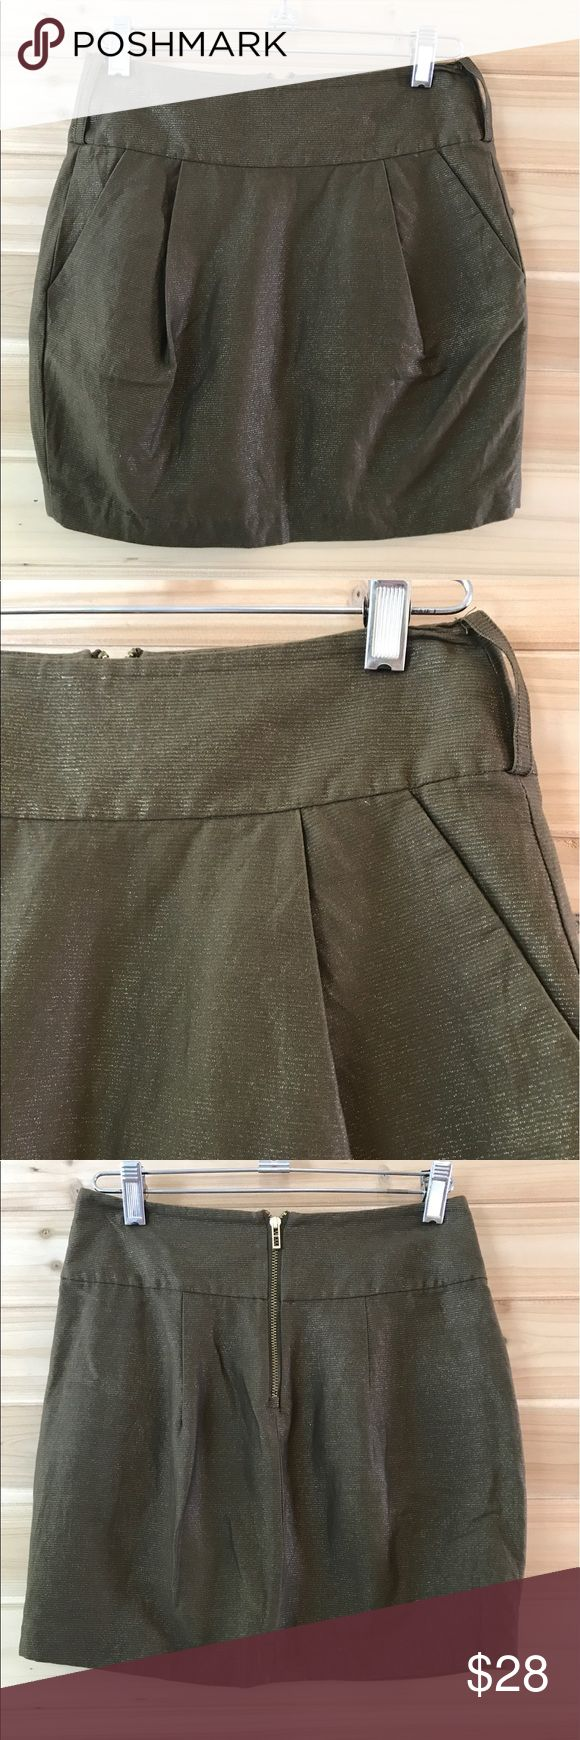 """[Armani Exchange] Green & Gold Mini Skirt Armani Exchange Sz 0 green skirt. Pretty gold threaded throughout. Pockets and pleats. Very good condition.   15"""" long 12.5"""" waist flat Armani Exchange Skirts Mini"""